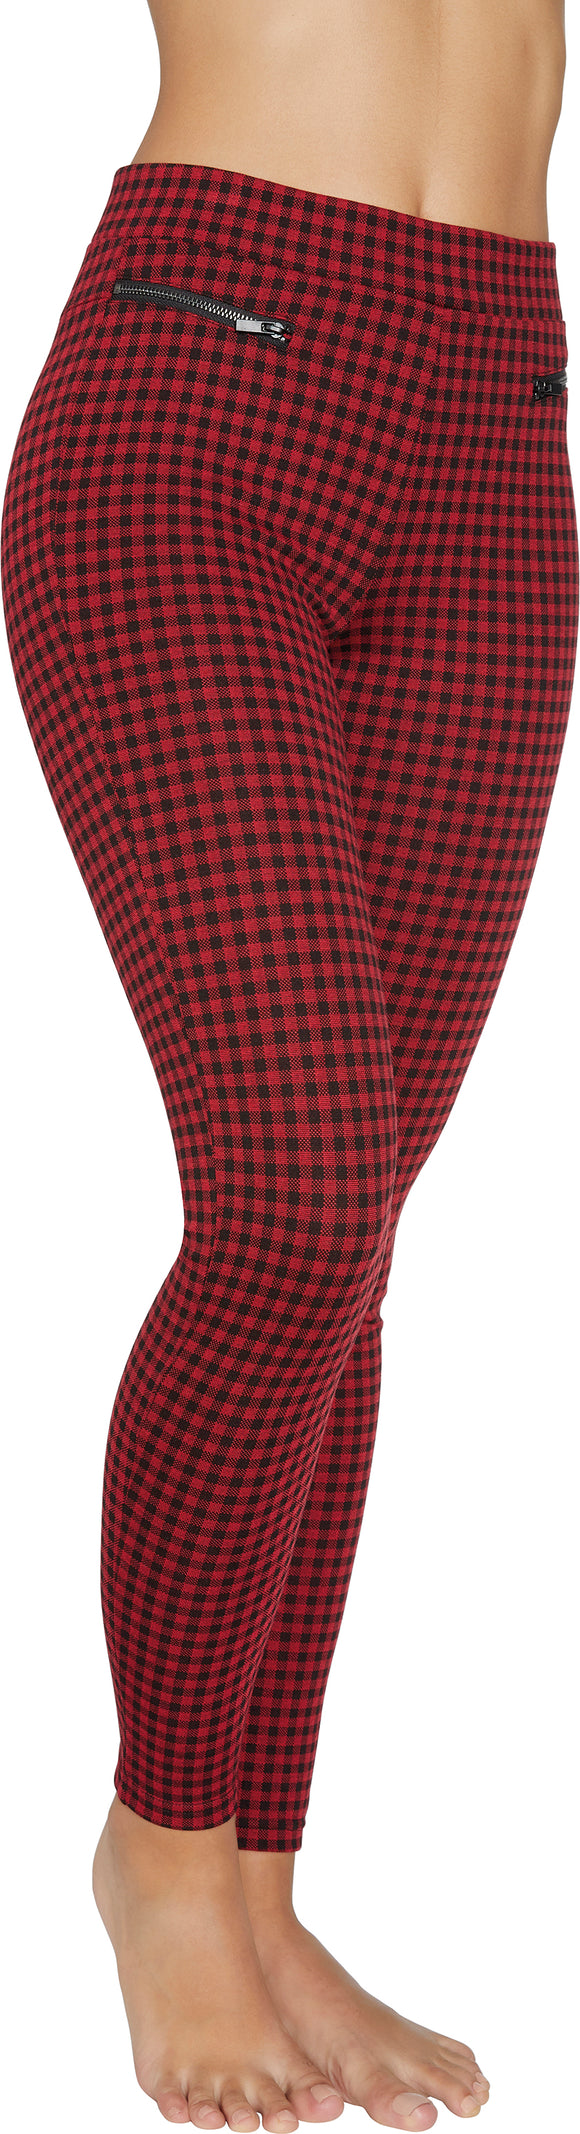 Ysabel Mora 70255 - red and black gingham check stretch high waisted trouser leggings